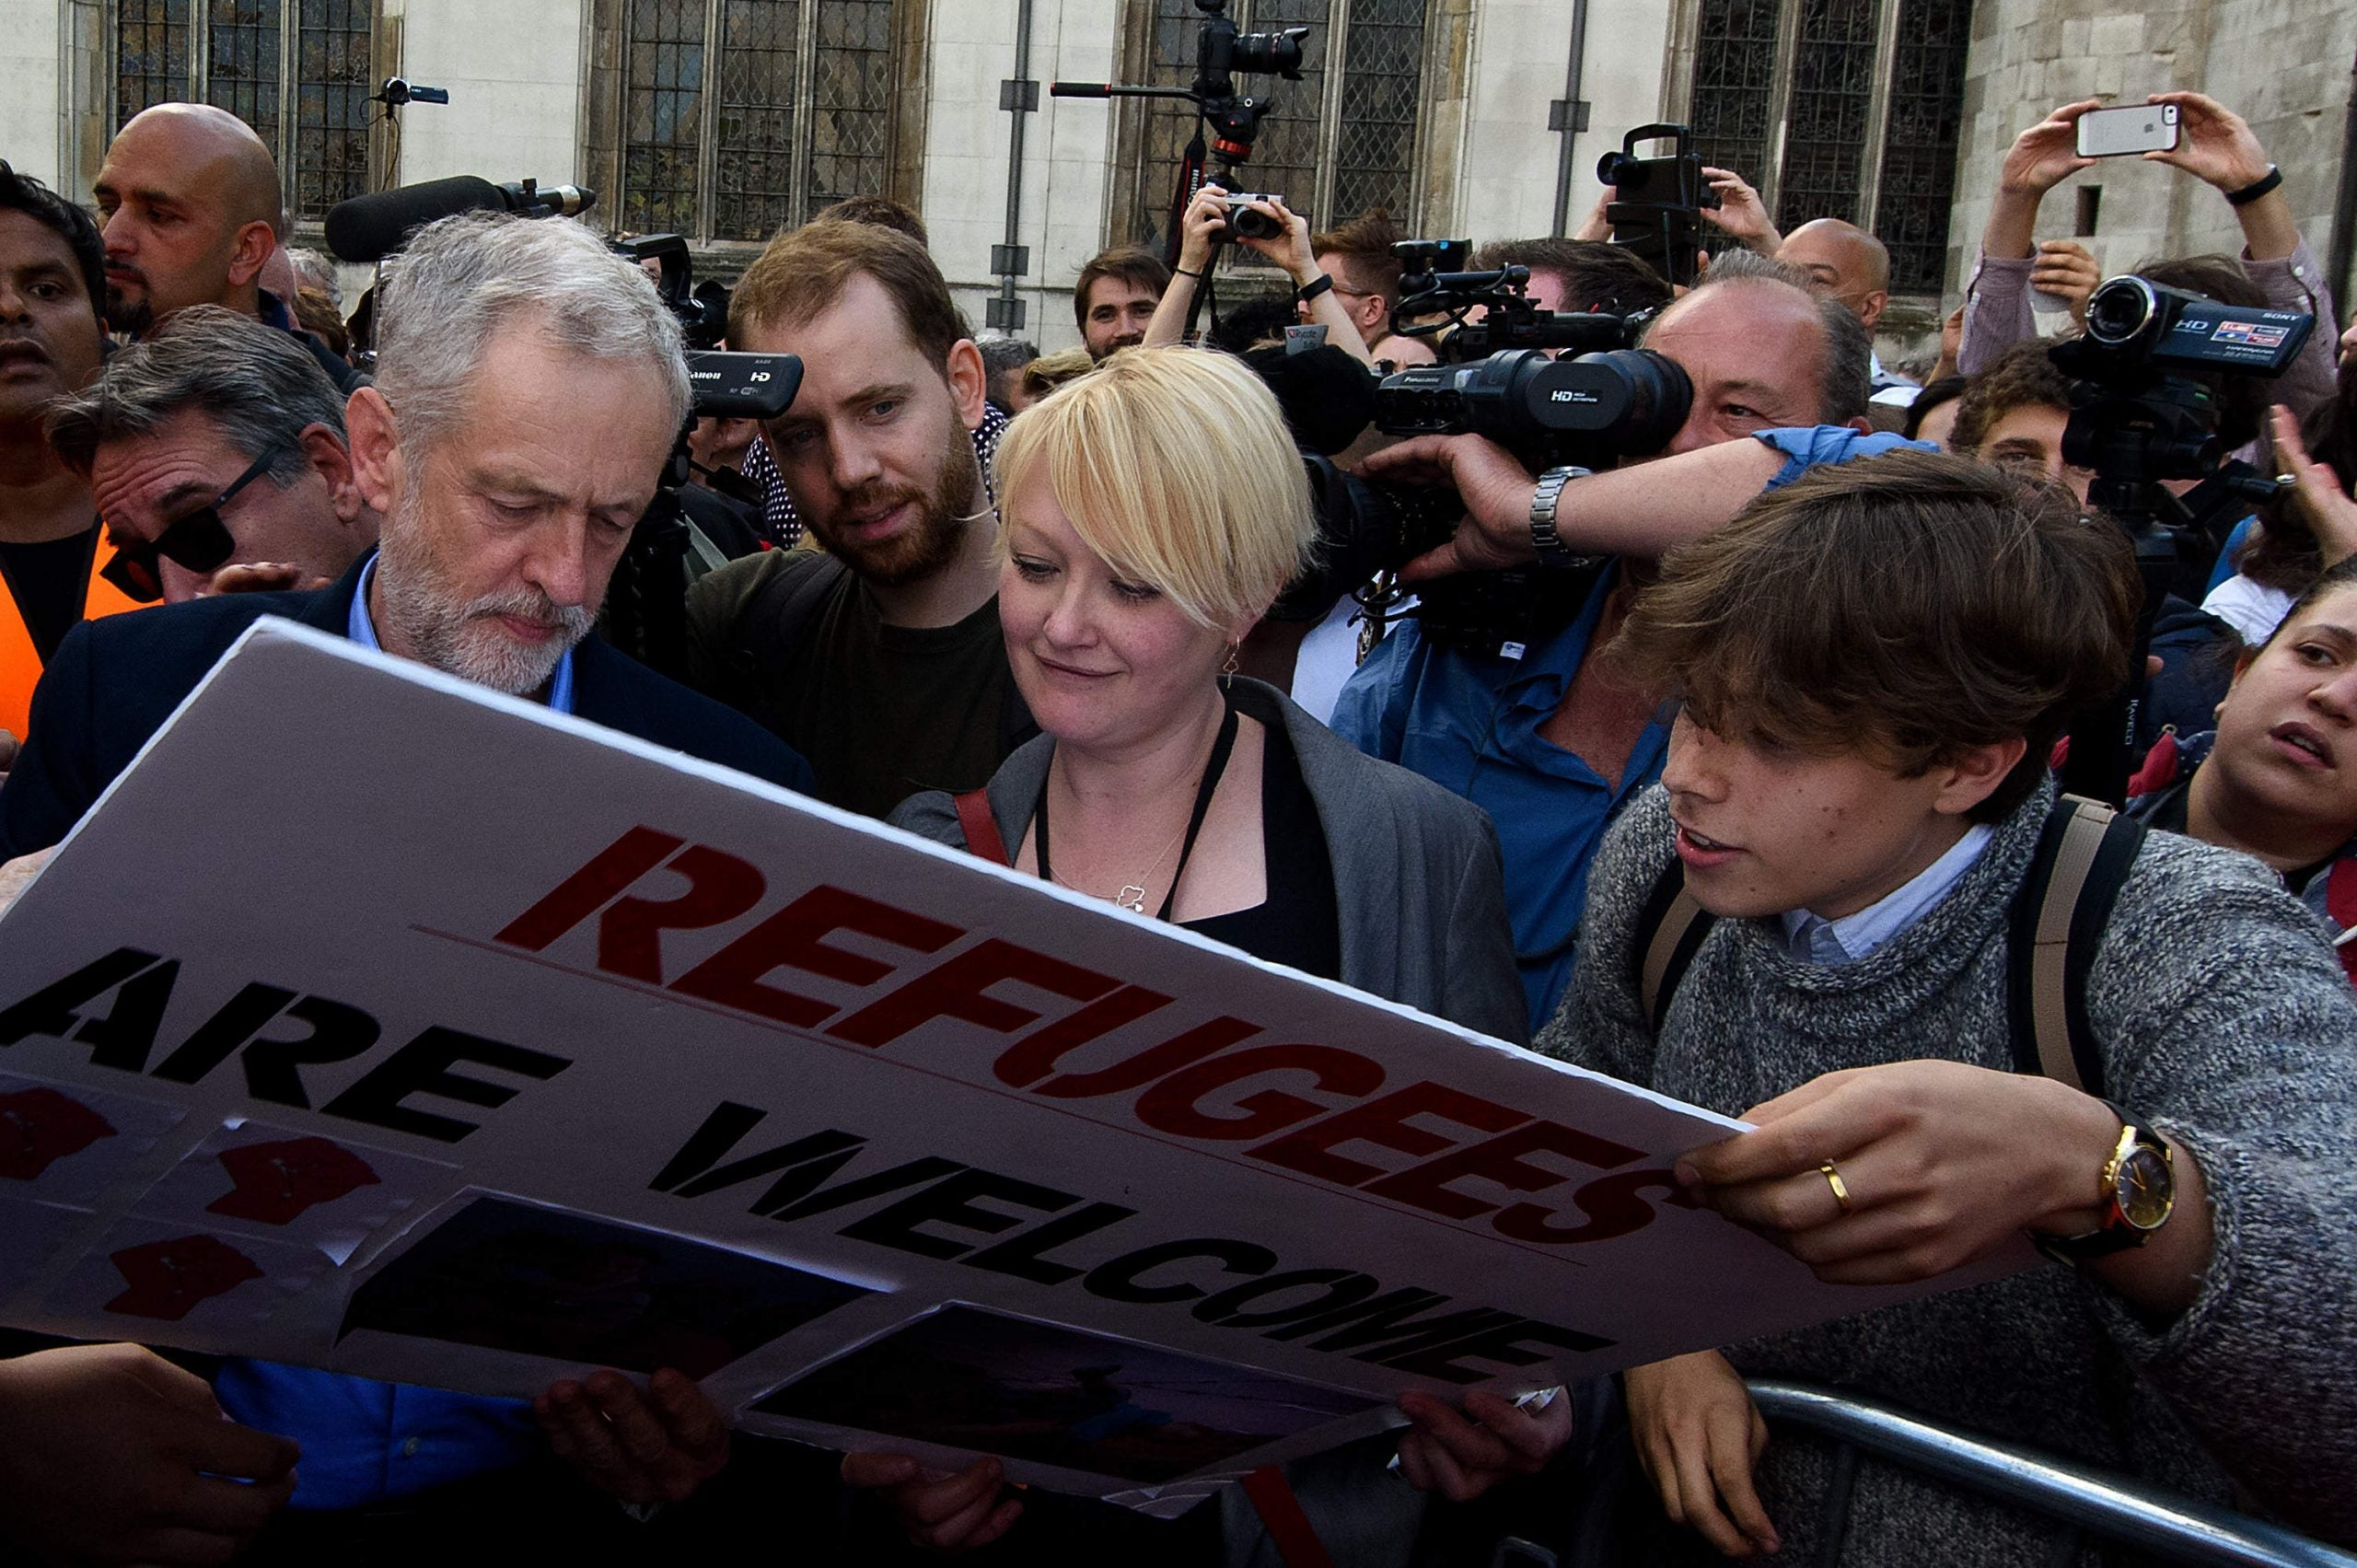 Jeremy Corbyn has given hope to my generation. Please don't let the cynics take it away